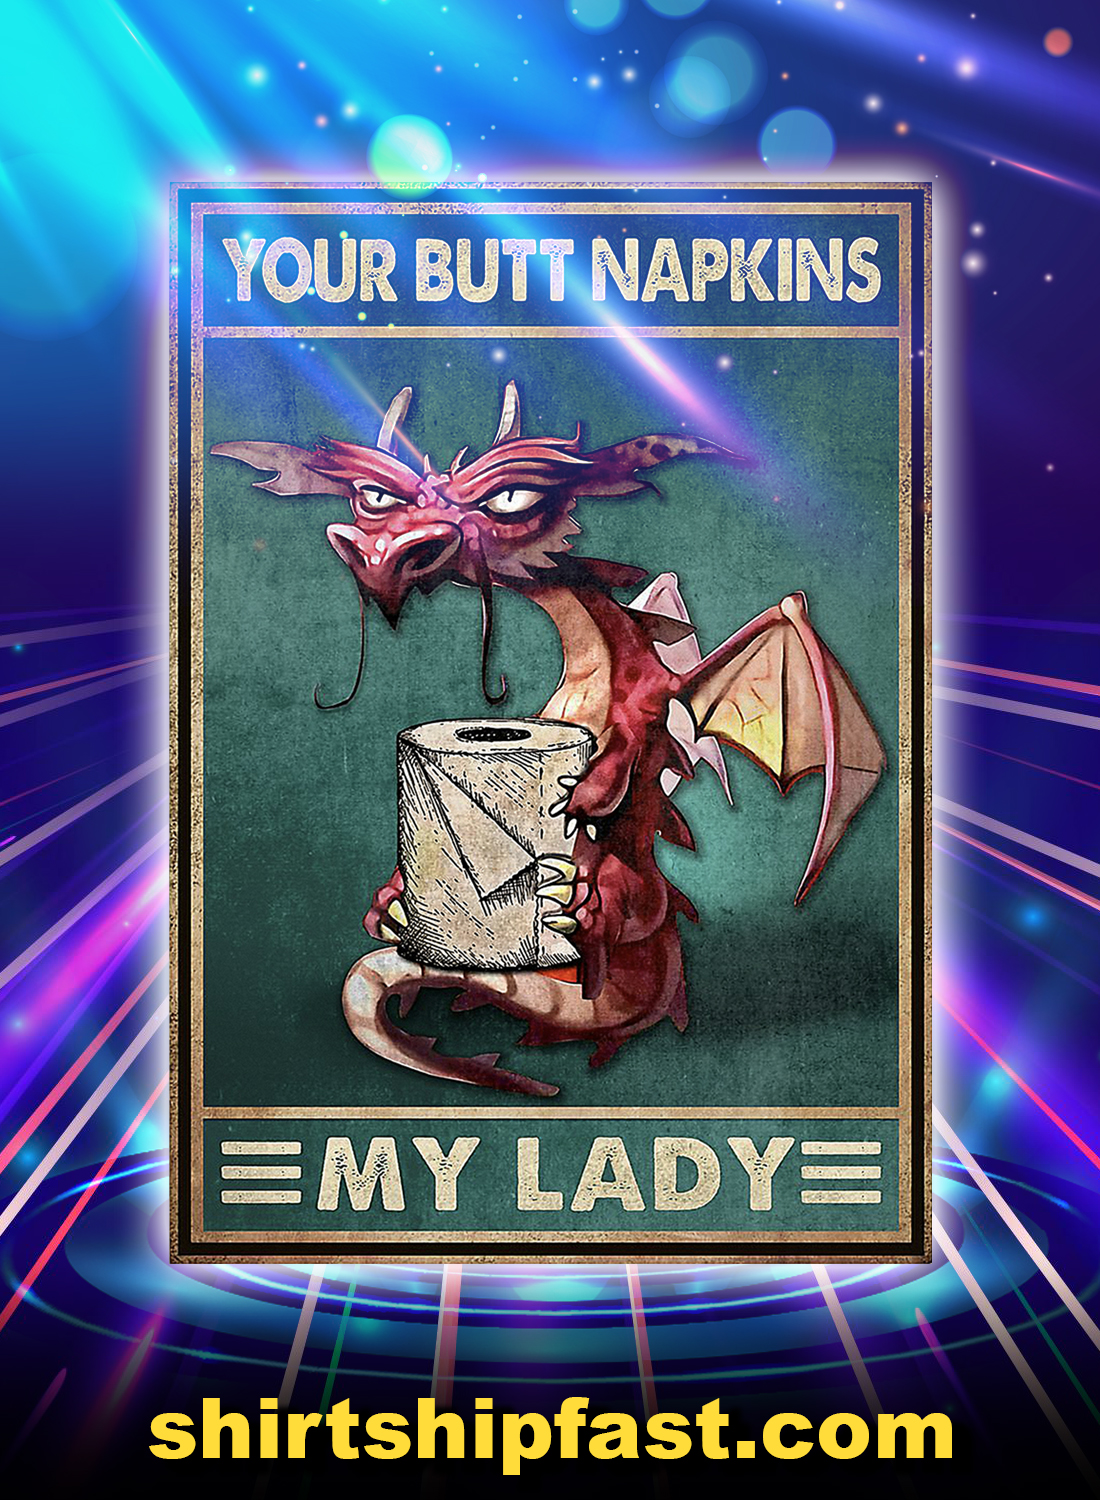 Dragon your butt napkins my lady poster - A4